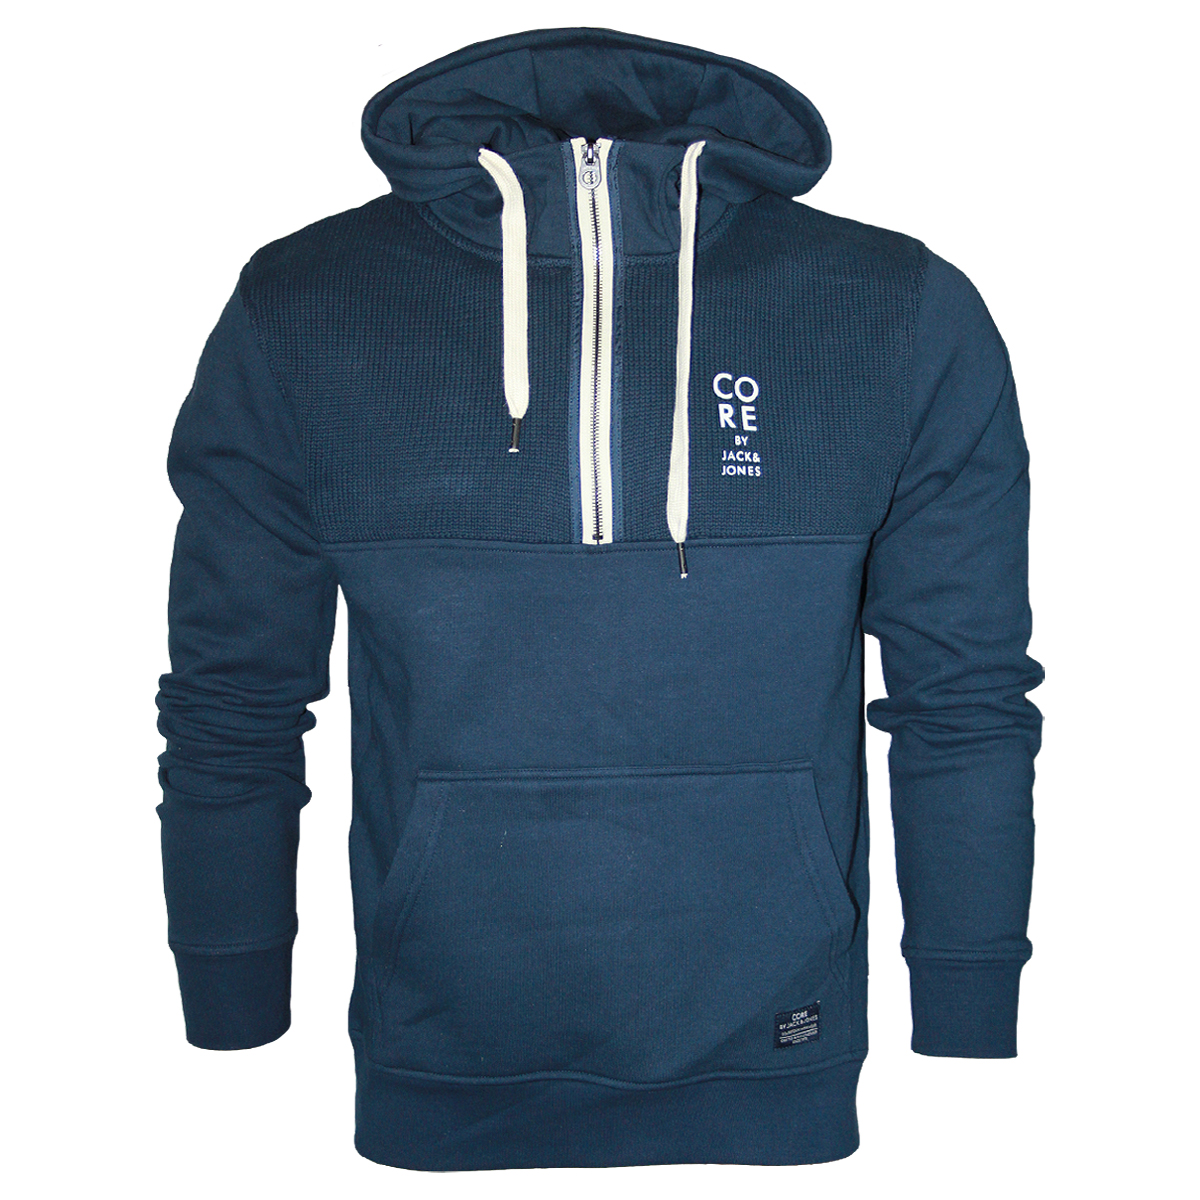 Jack and jones hoody